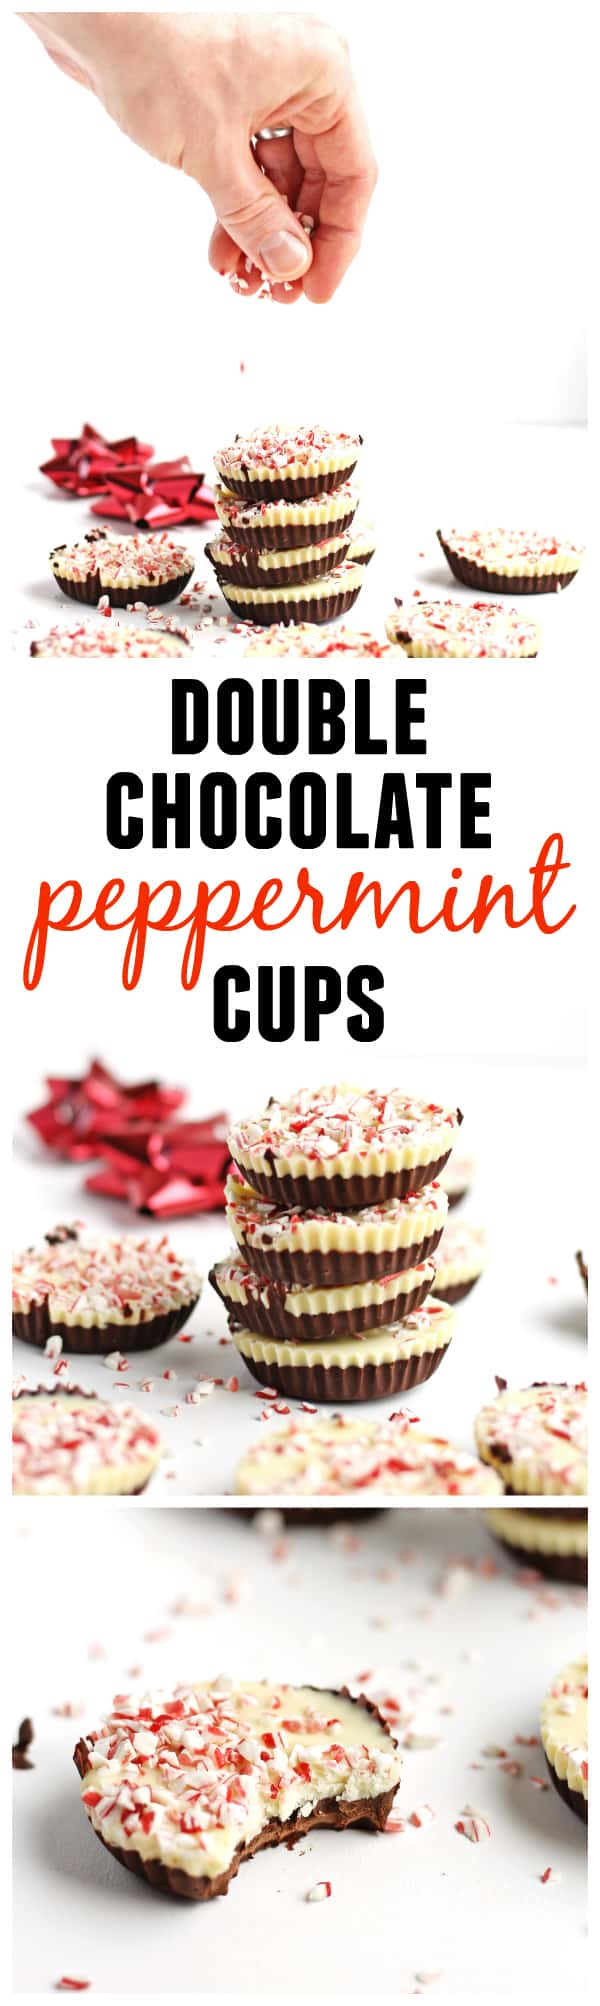 4 ingredient Double chocolate peppermint cups recipe! A wonderful holiday food gift made in only an hour! Or an easier way to make and enjoy peppermint bark this holiday season. SO GOOD! - Rhubarbarians